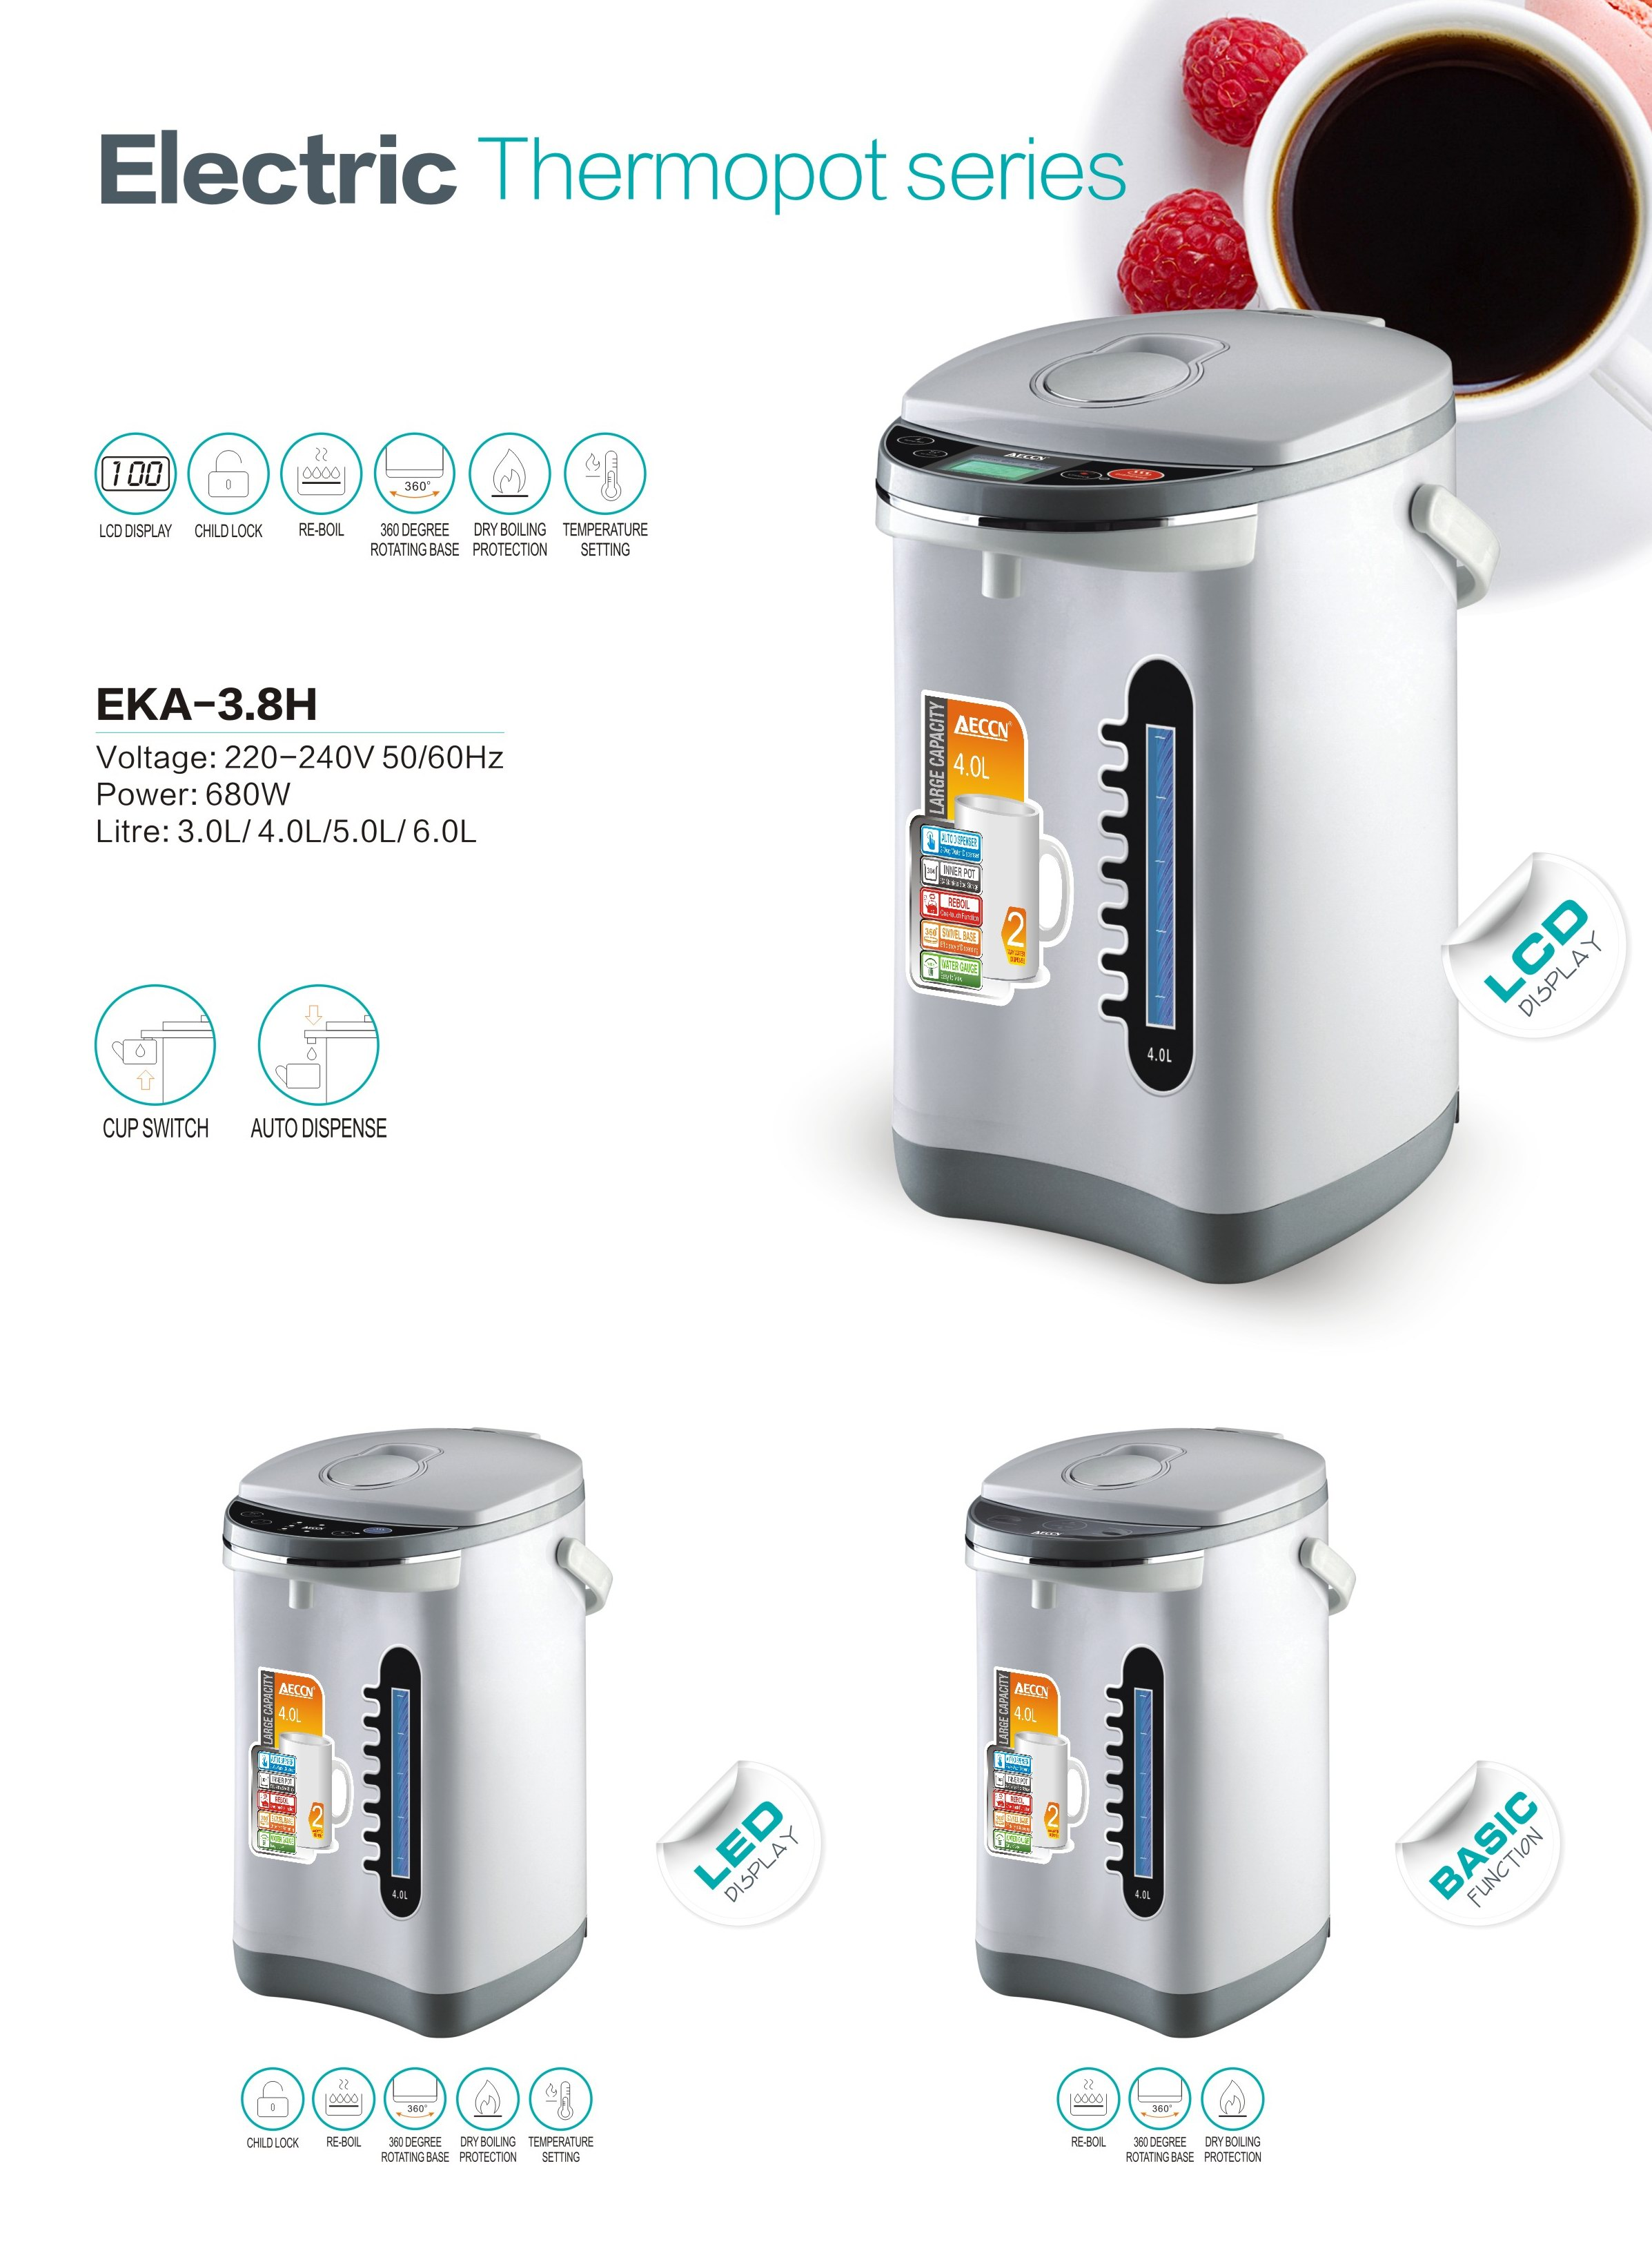 EKA-3.8H Good sell in Amazon Electric Thermo pot, electric hot pot, electric dispenser pot with CB C